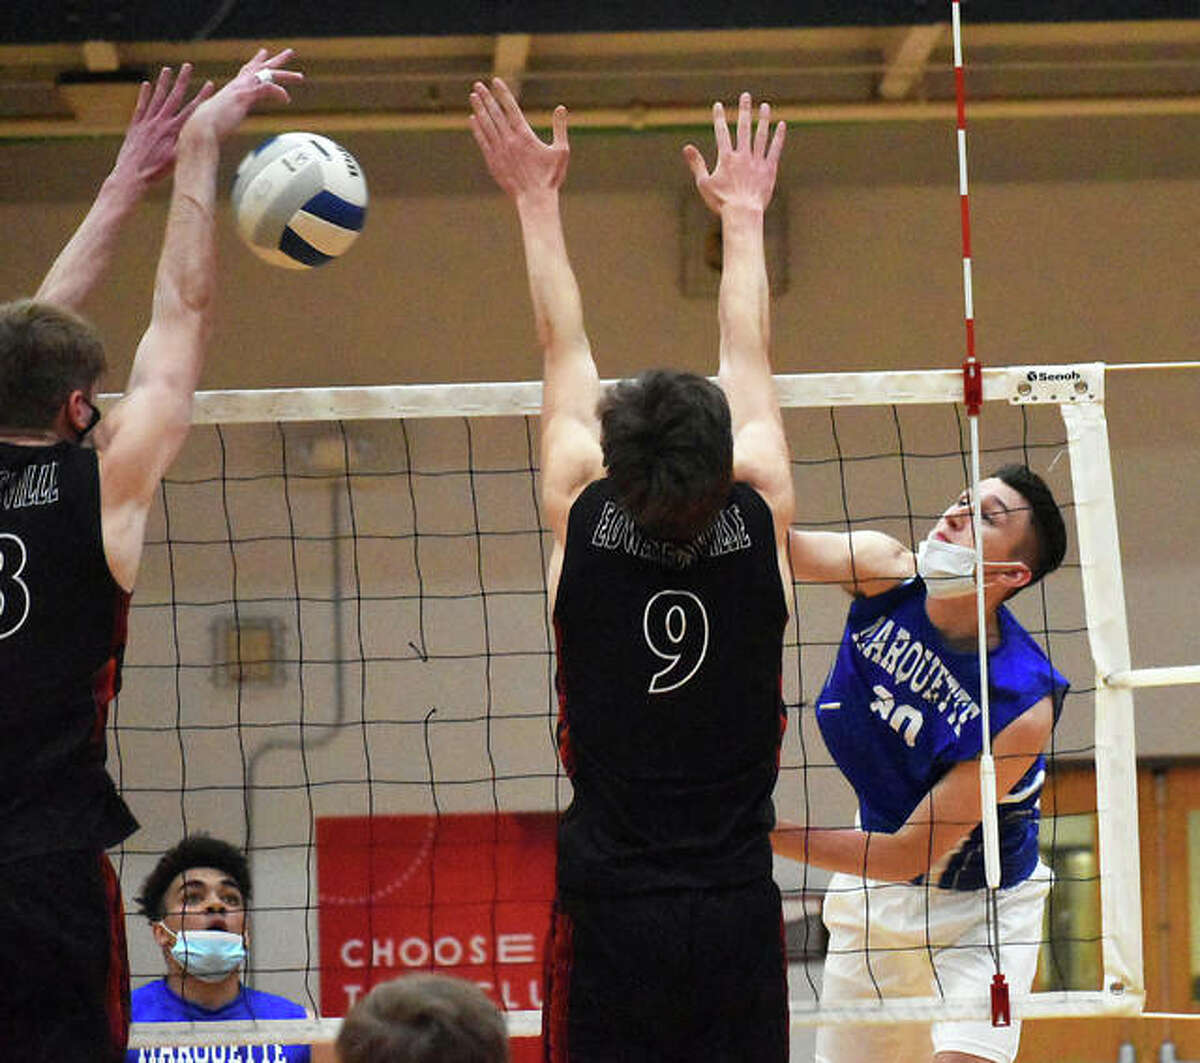 Marquette Catholic senior Jake Roth (right) hits past a double block put up by Edwardsville in a May 12 match at Lucco-Jackson Gym in Edwardsville. Roth is the 2021 Telegraph Boys Volleyball Player of the Year.